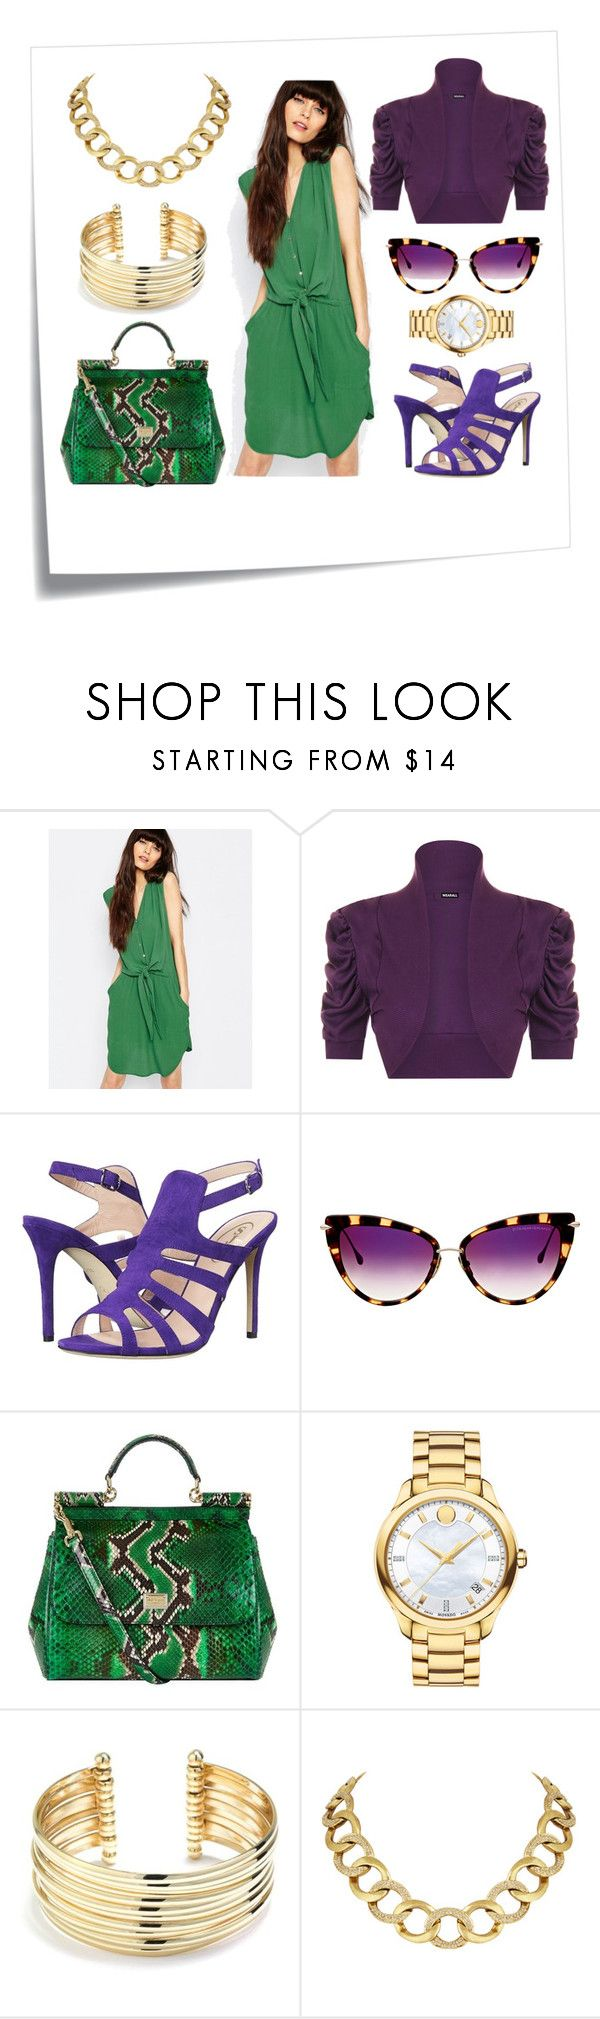 """green day"" by slavulienka on Polyvore featuring Post-It, SELECTED, WearAll, SJP, Dita, Dolce&Gabbana, Movado, Belk Silverworks, House of Harlow 1960 and plus size clothing"